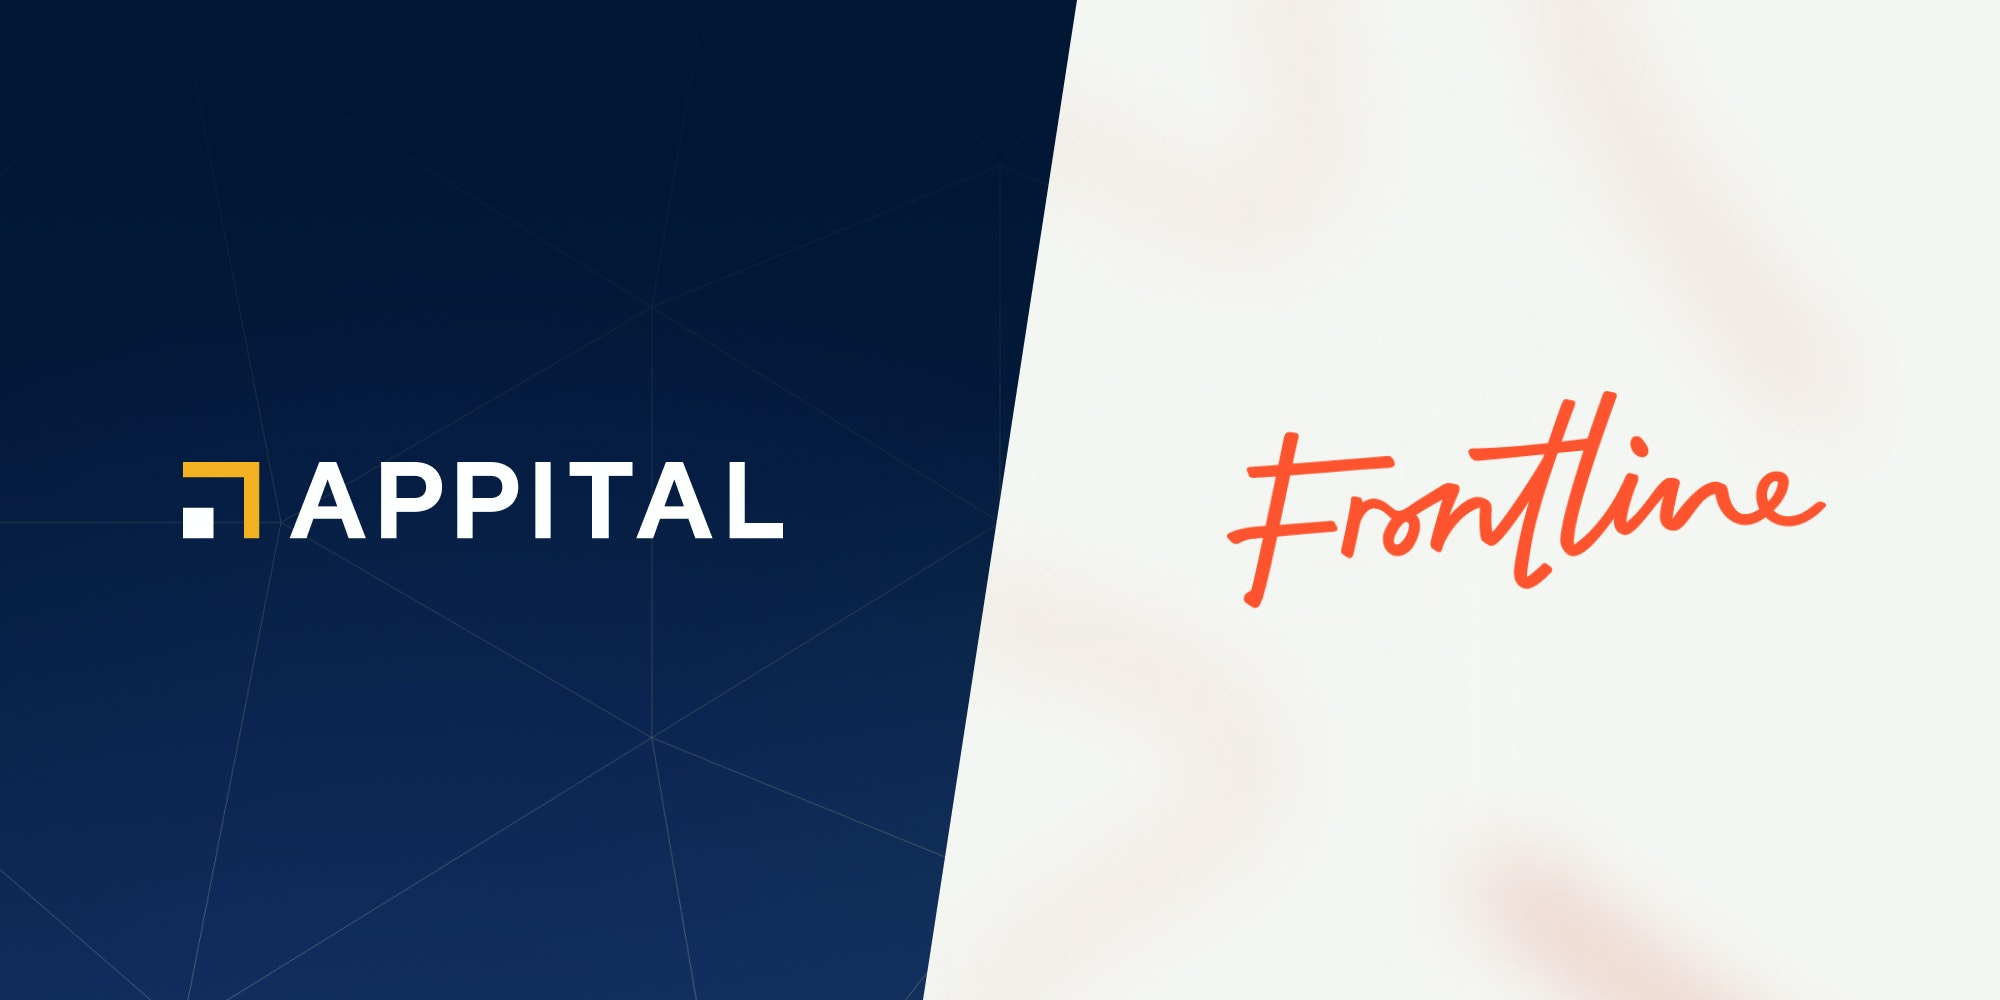 Appital secures £2.5m investment led by Frontline Ventures